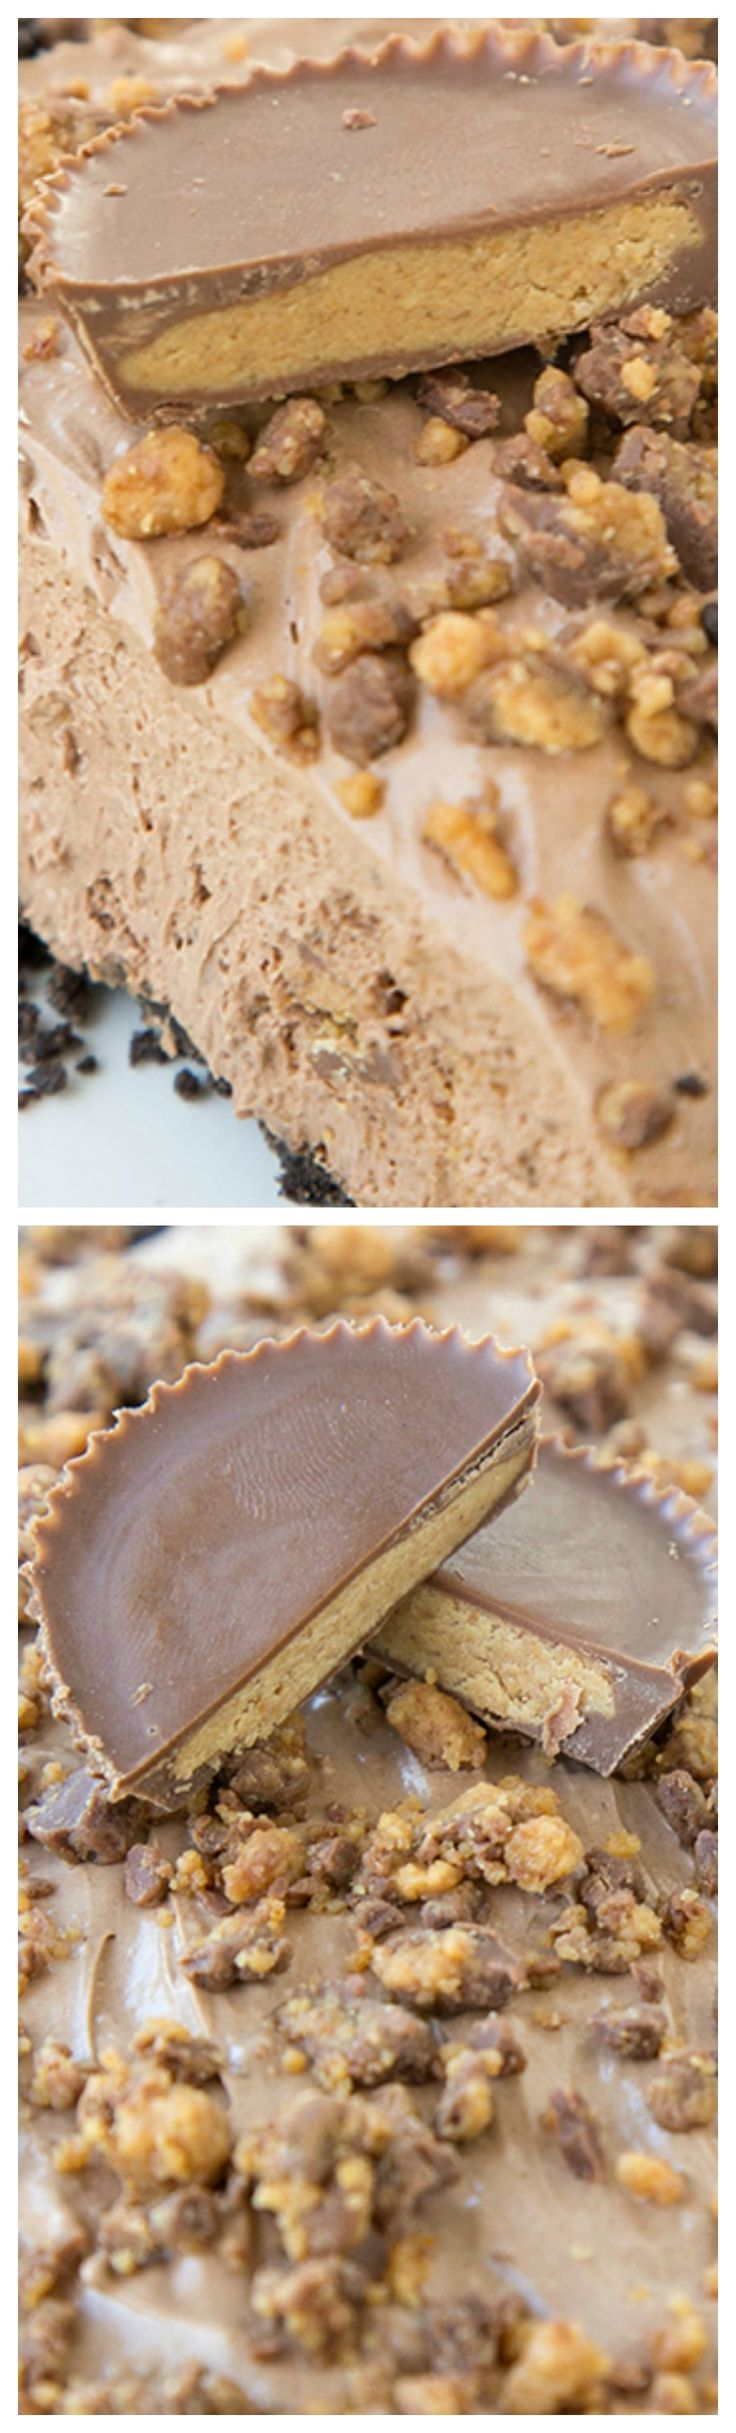 No Bake Chocolate Reese's Cheesecake ~ It has a creamy, rich chocolate filling with chunks of peanut butter chocolate in a Peanut Butter Oreo Crust... It's a choco-holics dream dessert!